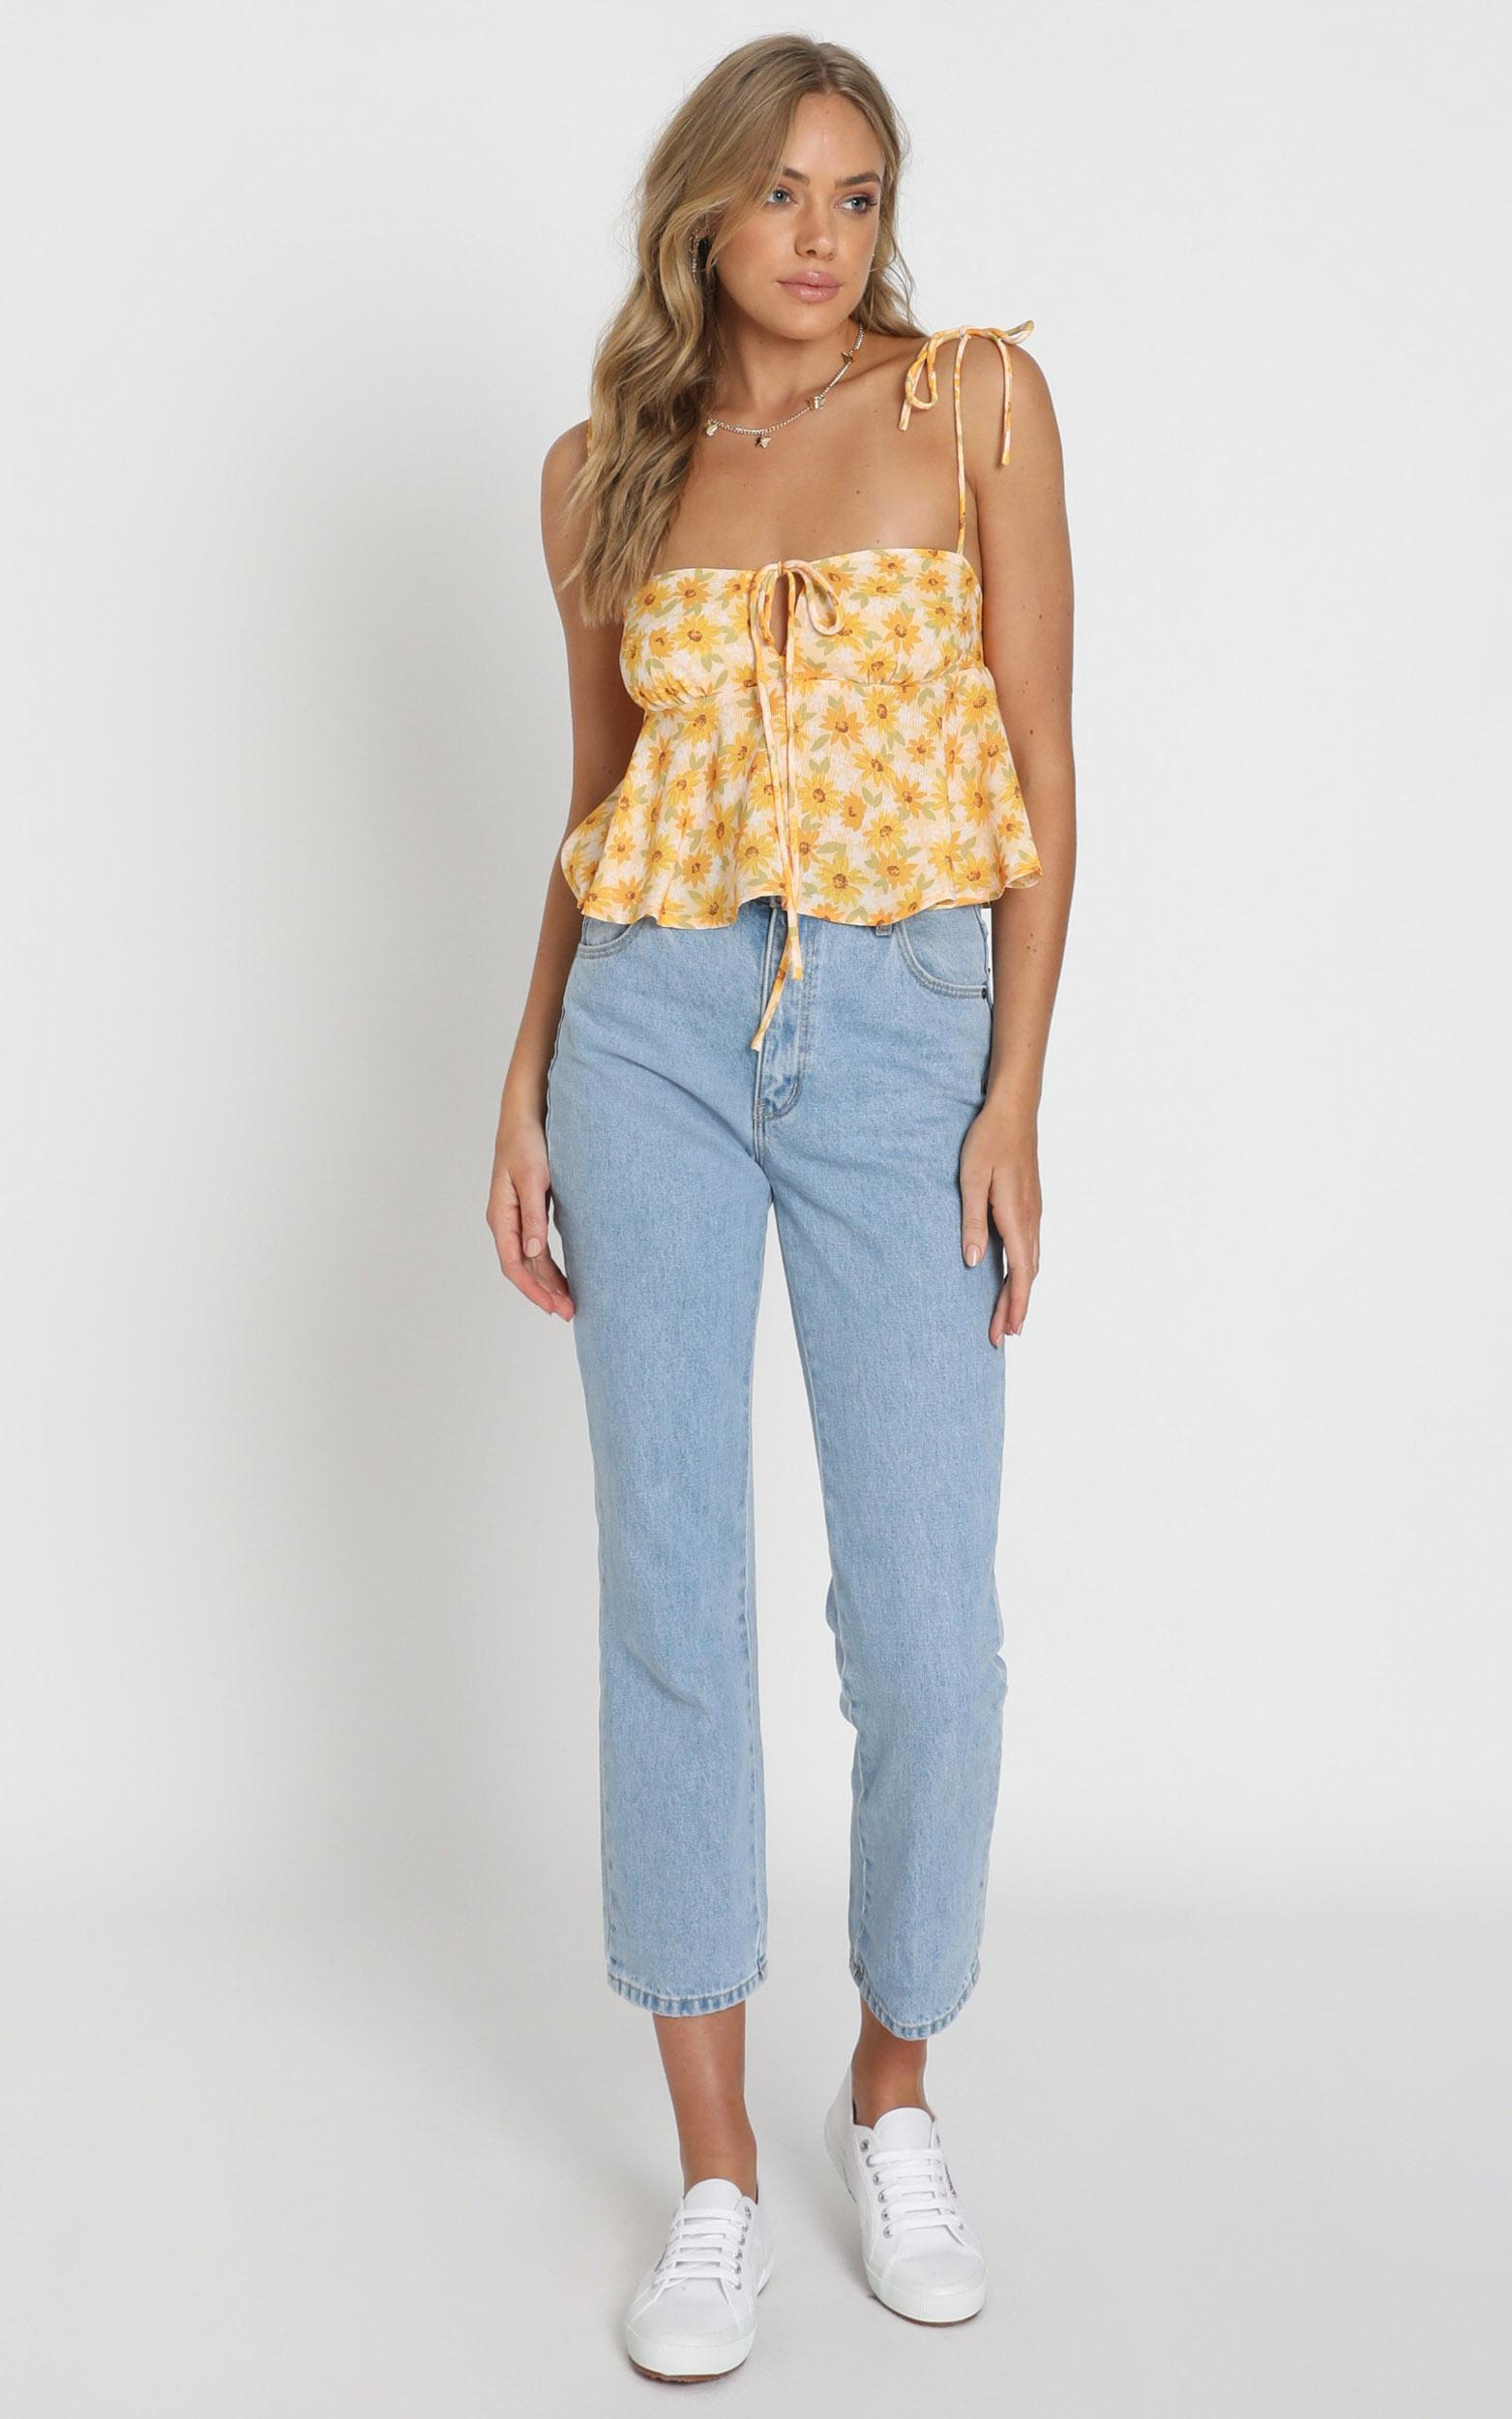 Aint No Sweetie Top in sunflower print - 20 (XXXXL), Yellow, hi-res image number null